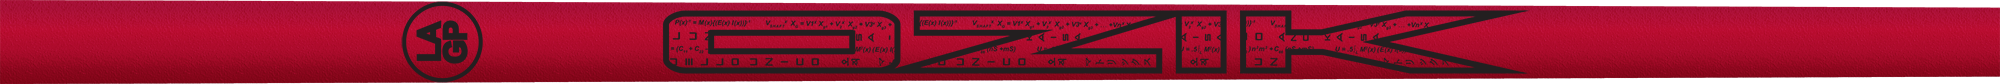 Ozik White Tie: Red Black Textured - Wood 60 R